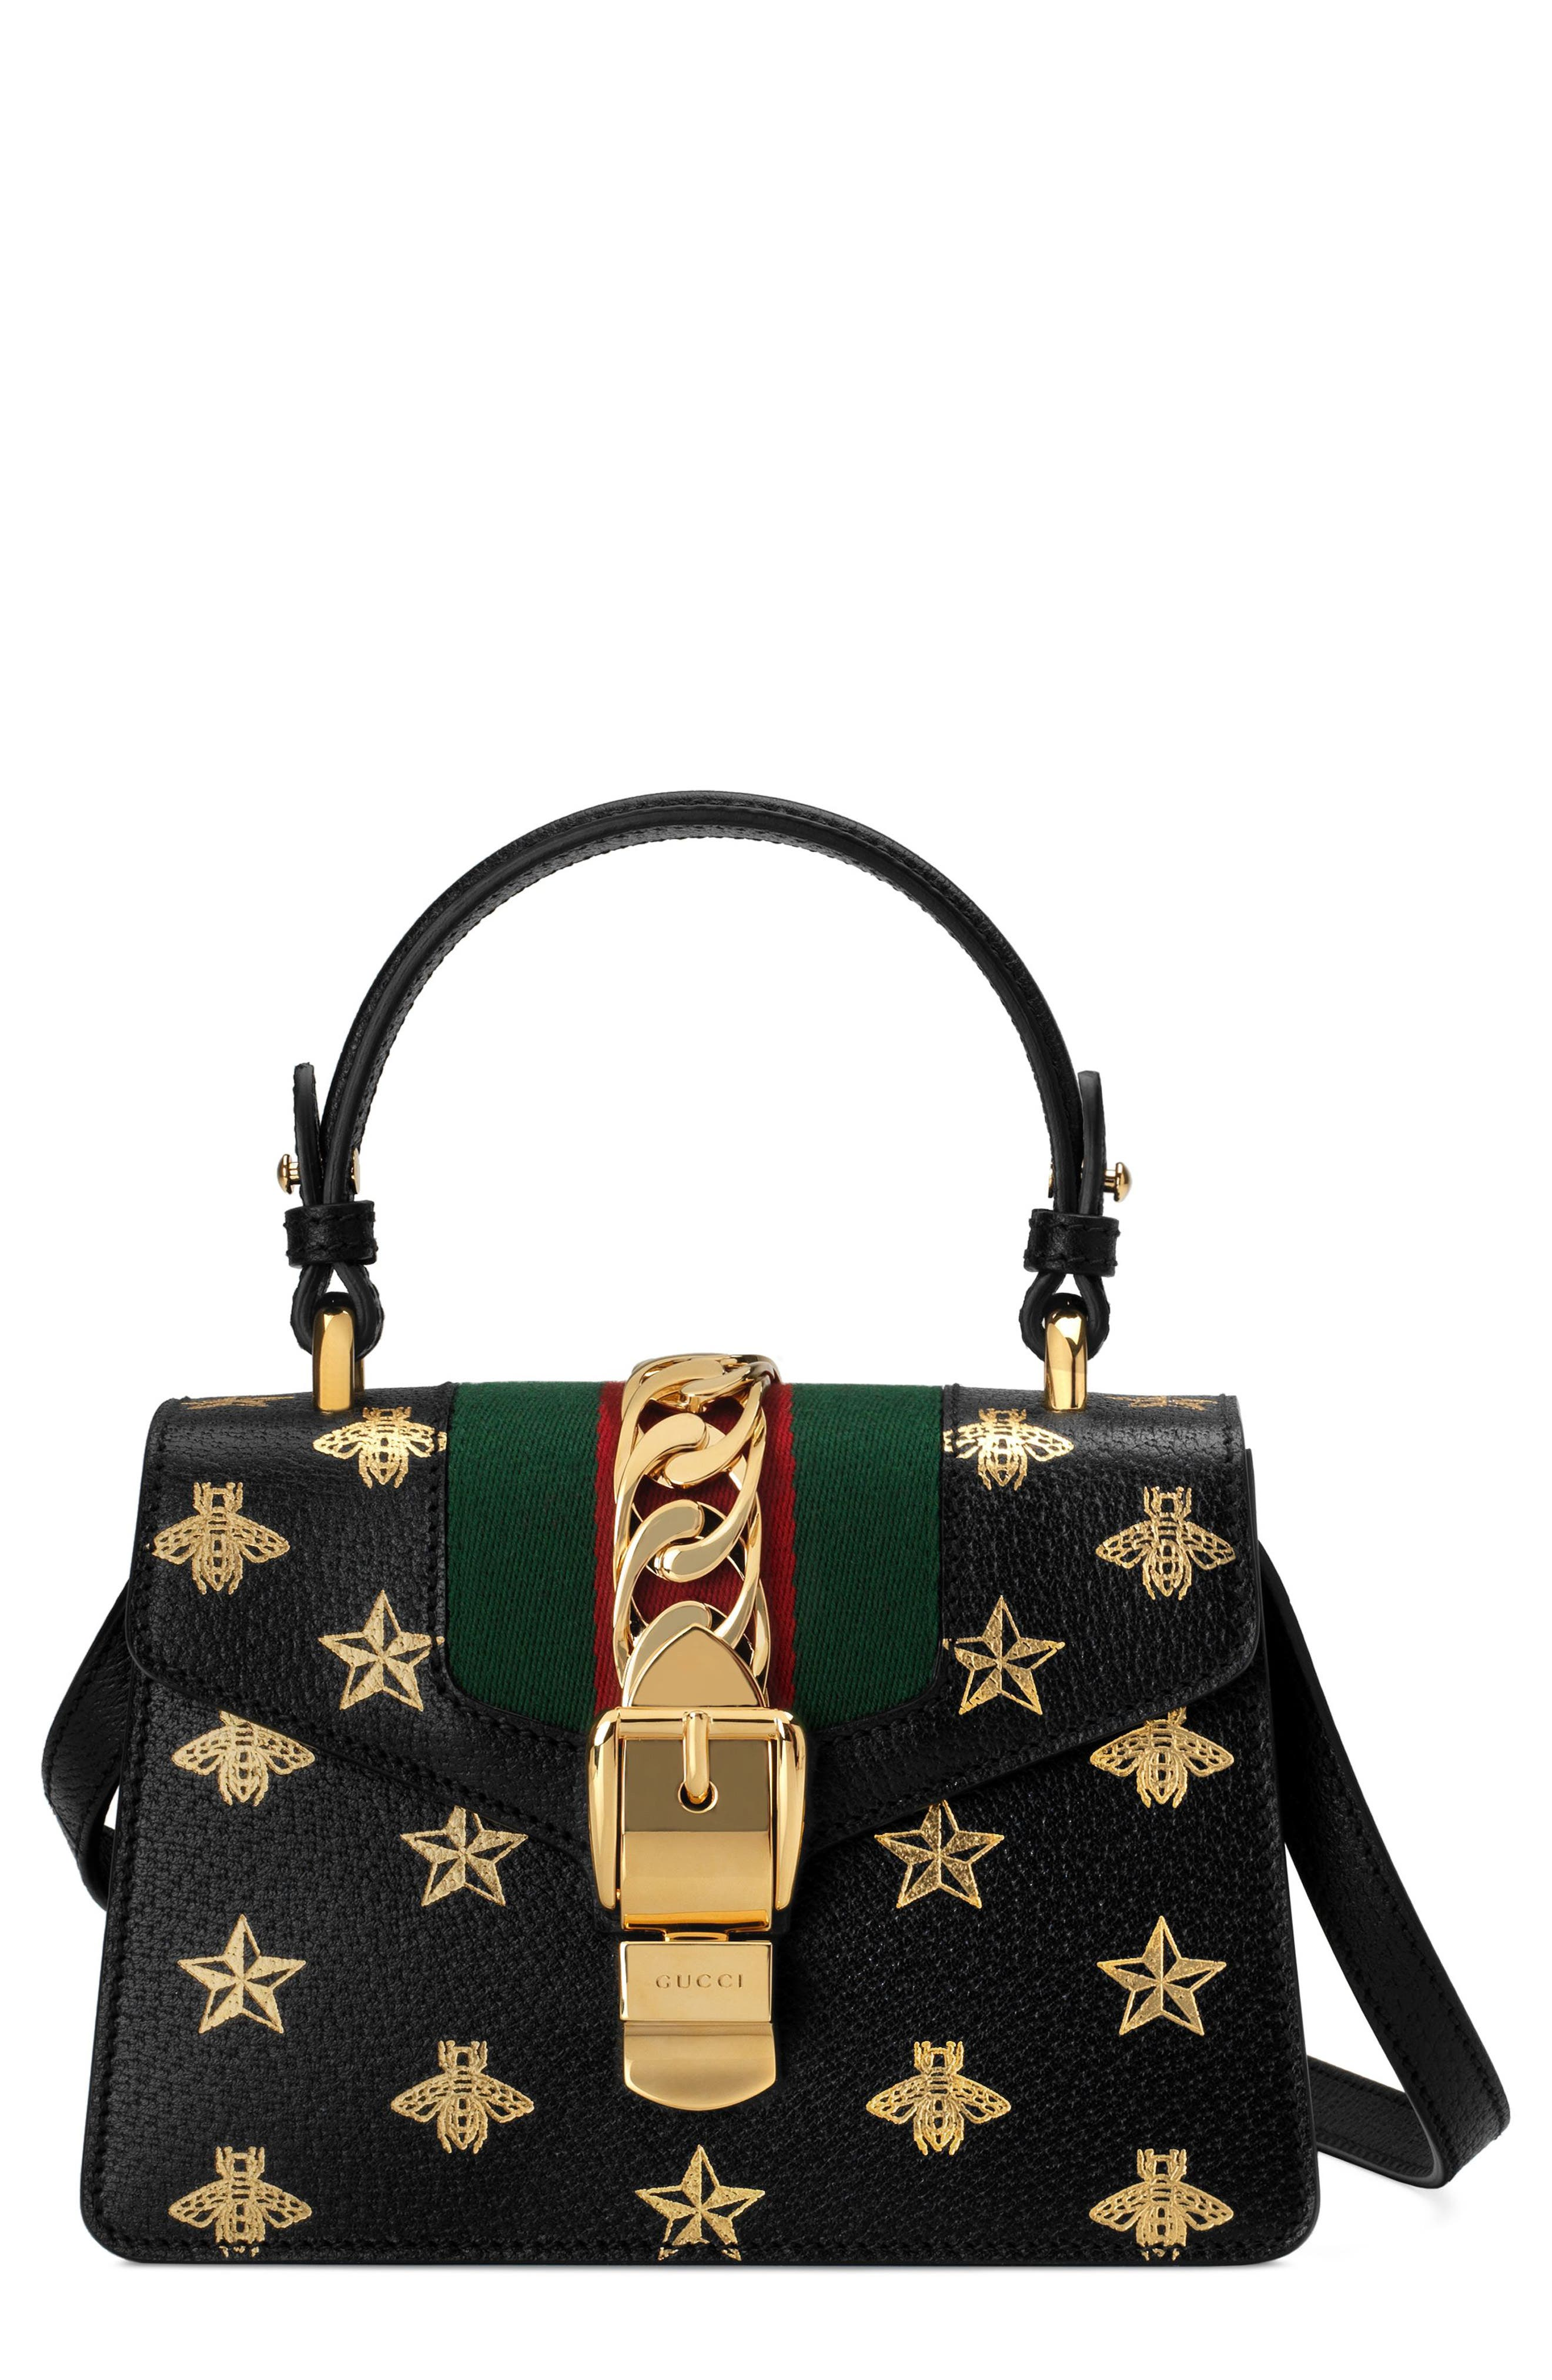 Small Sylvie Top Handle Leather Shoulder Bag,                             Main thumbnail 1, color,                             NERO/ ORO/ VERT/ RED